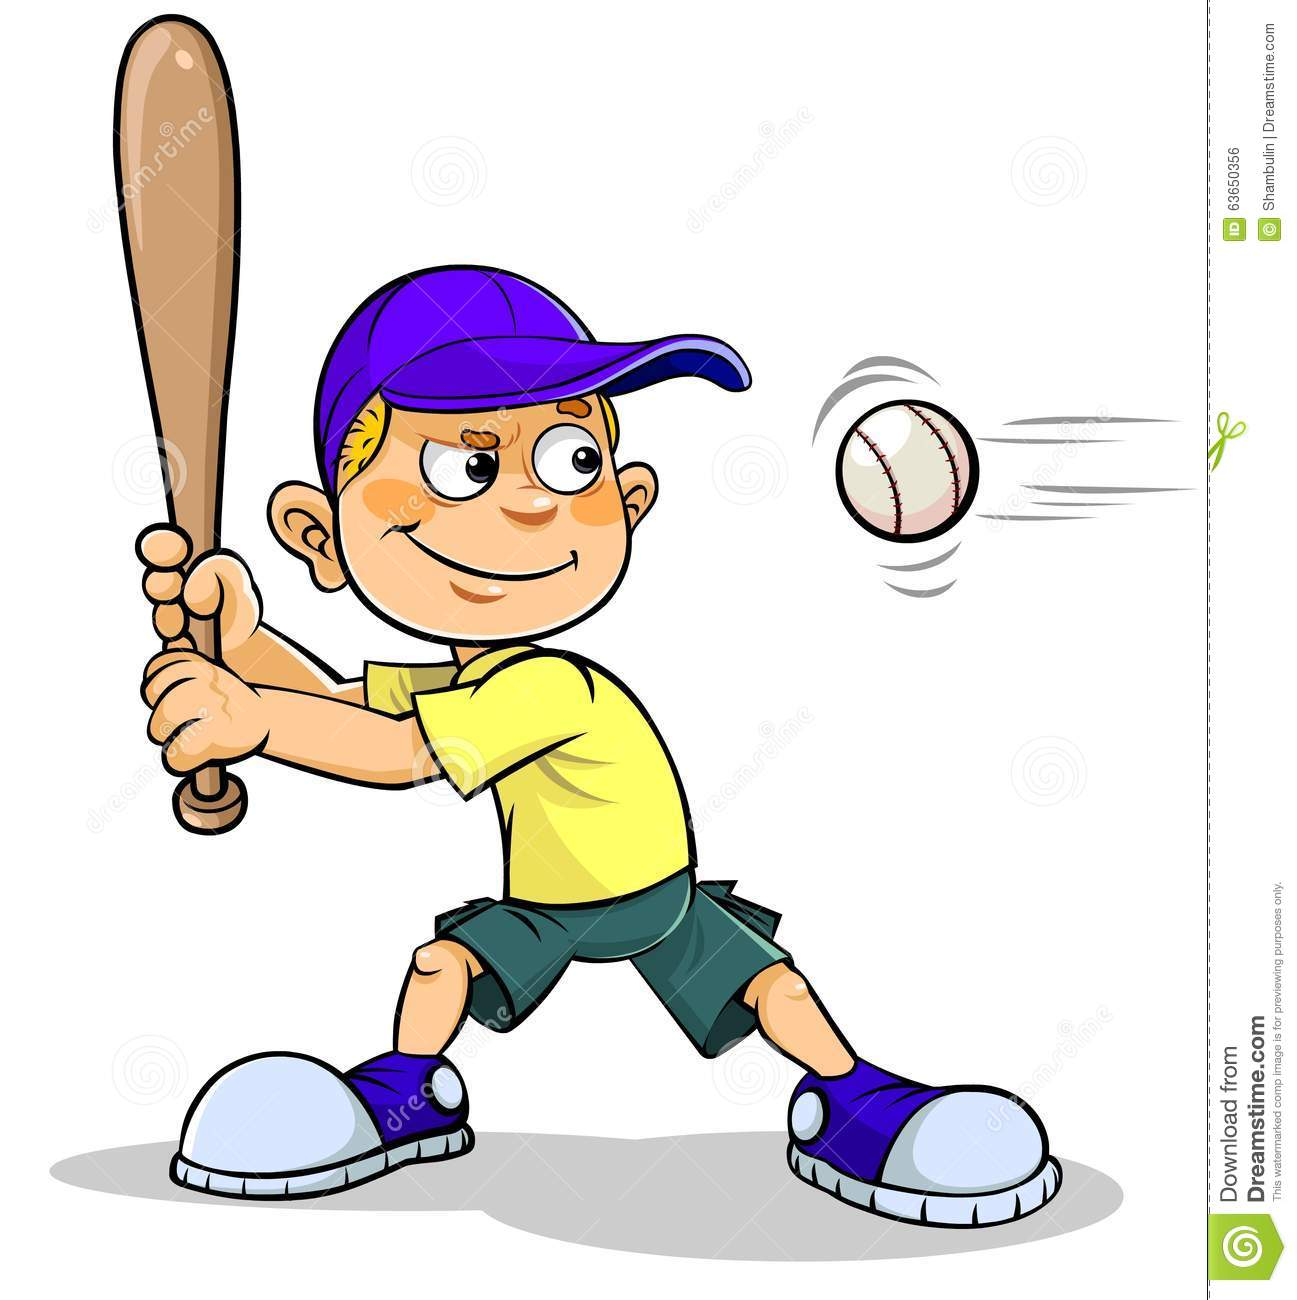 Kids playing baseball clipart 2 » Clipart Station.